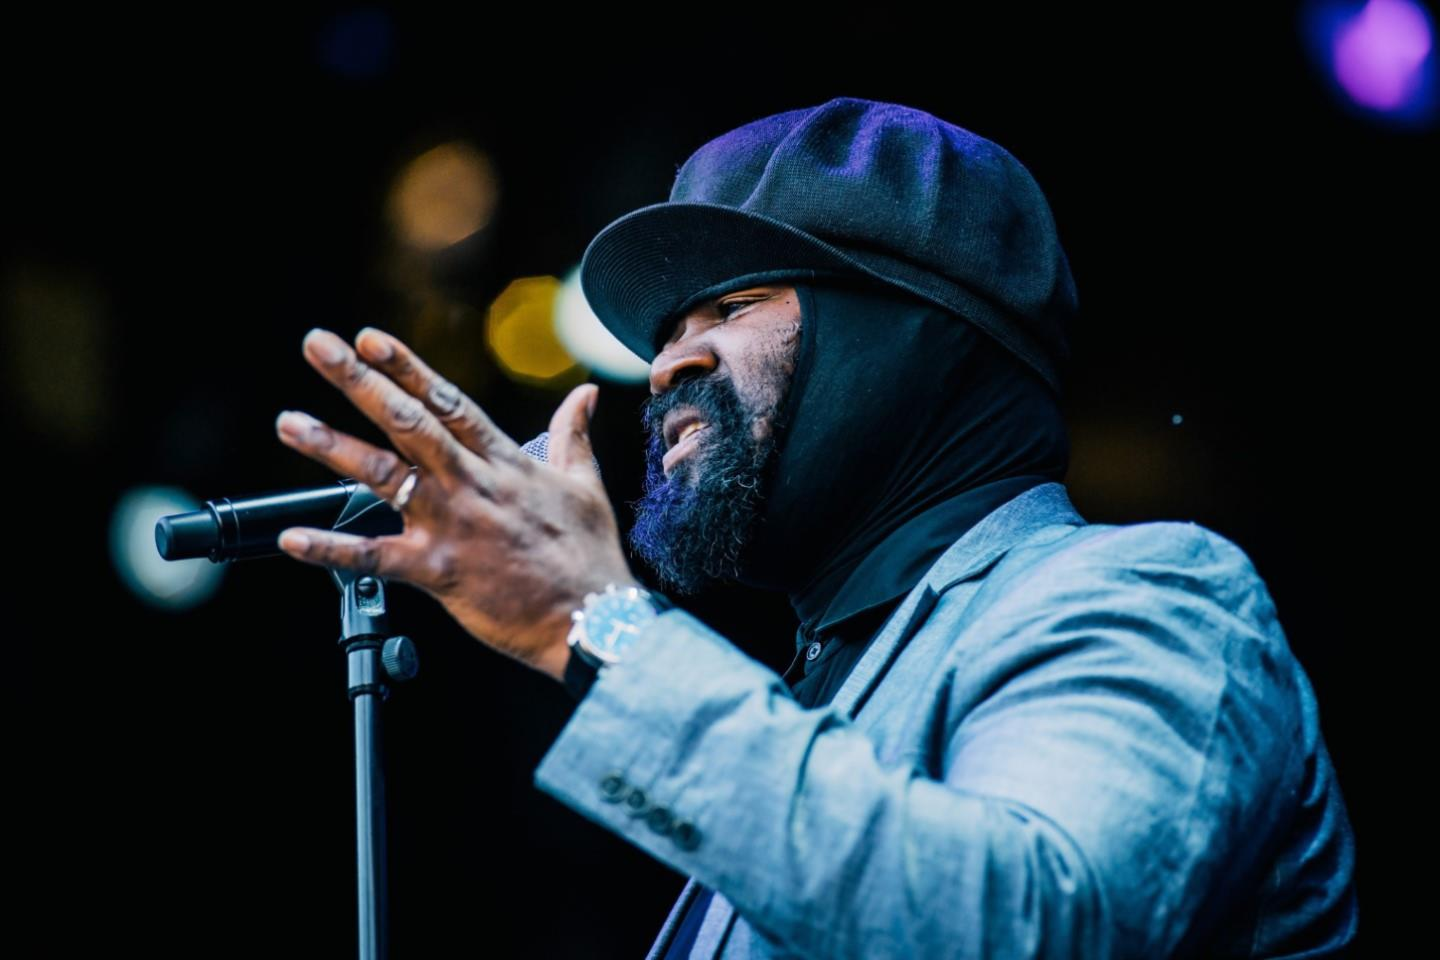 Le Meilleur Gregory Porter Tickets Gregory Porter Tour Dates 2019 Ce Mois Ci